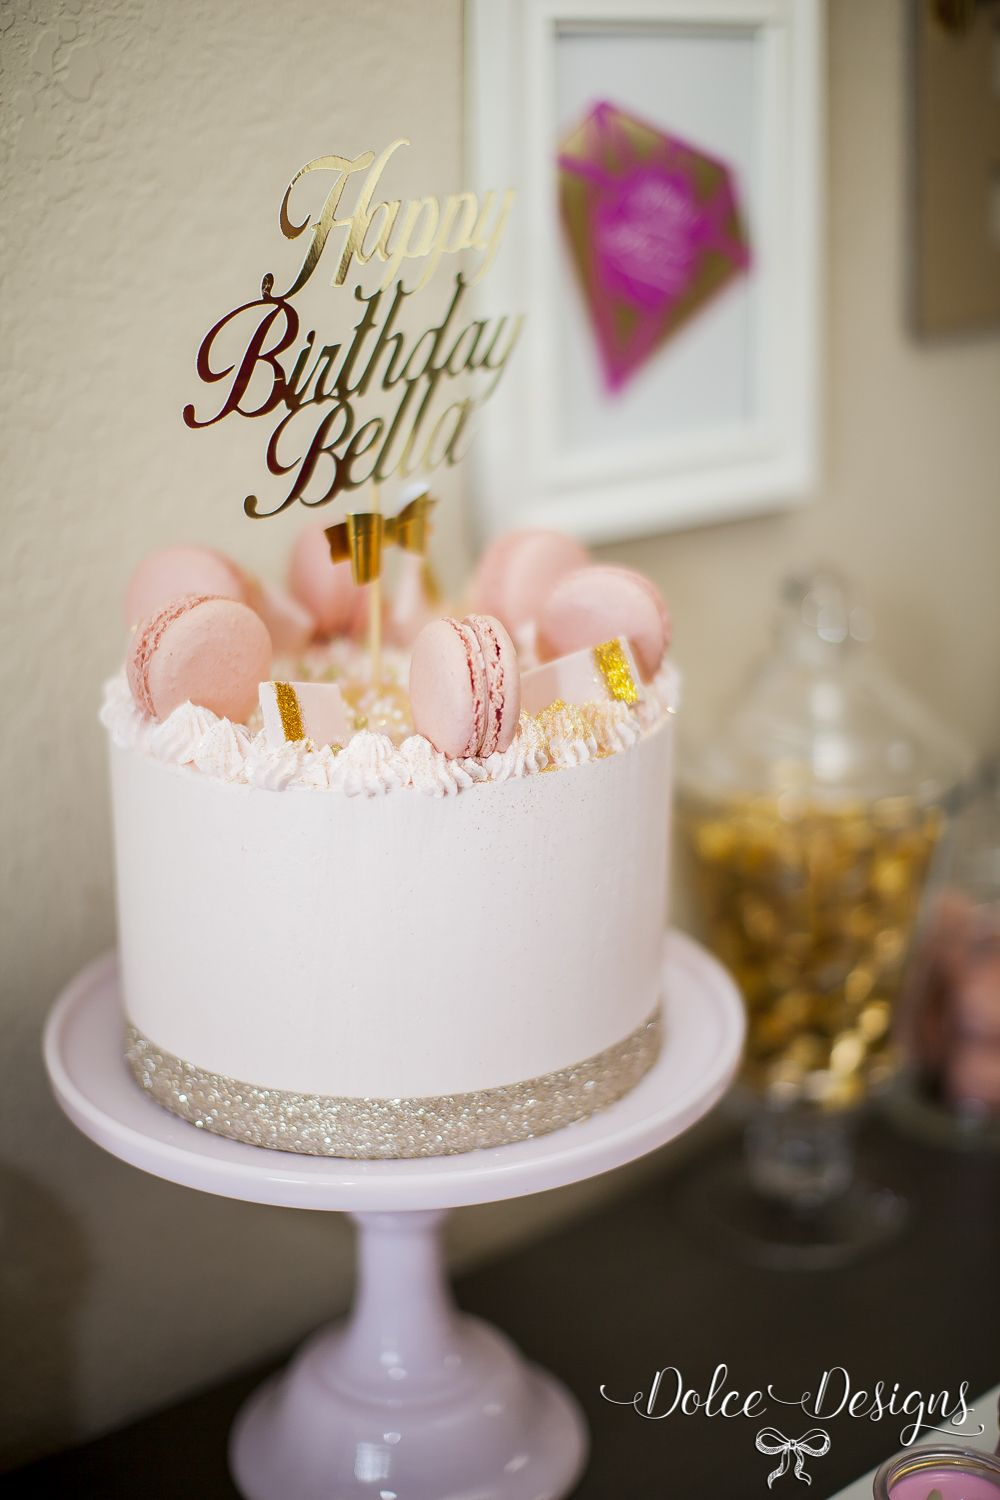 Incredible 21 Birthday Cakes For Her Modern Pink And Gold Birthday Cake Cakes Funny Birthday Cards Online Alyptdamsfinfo